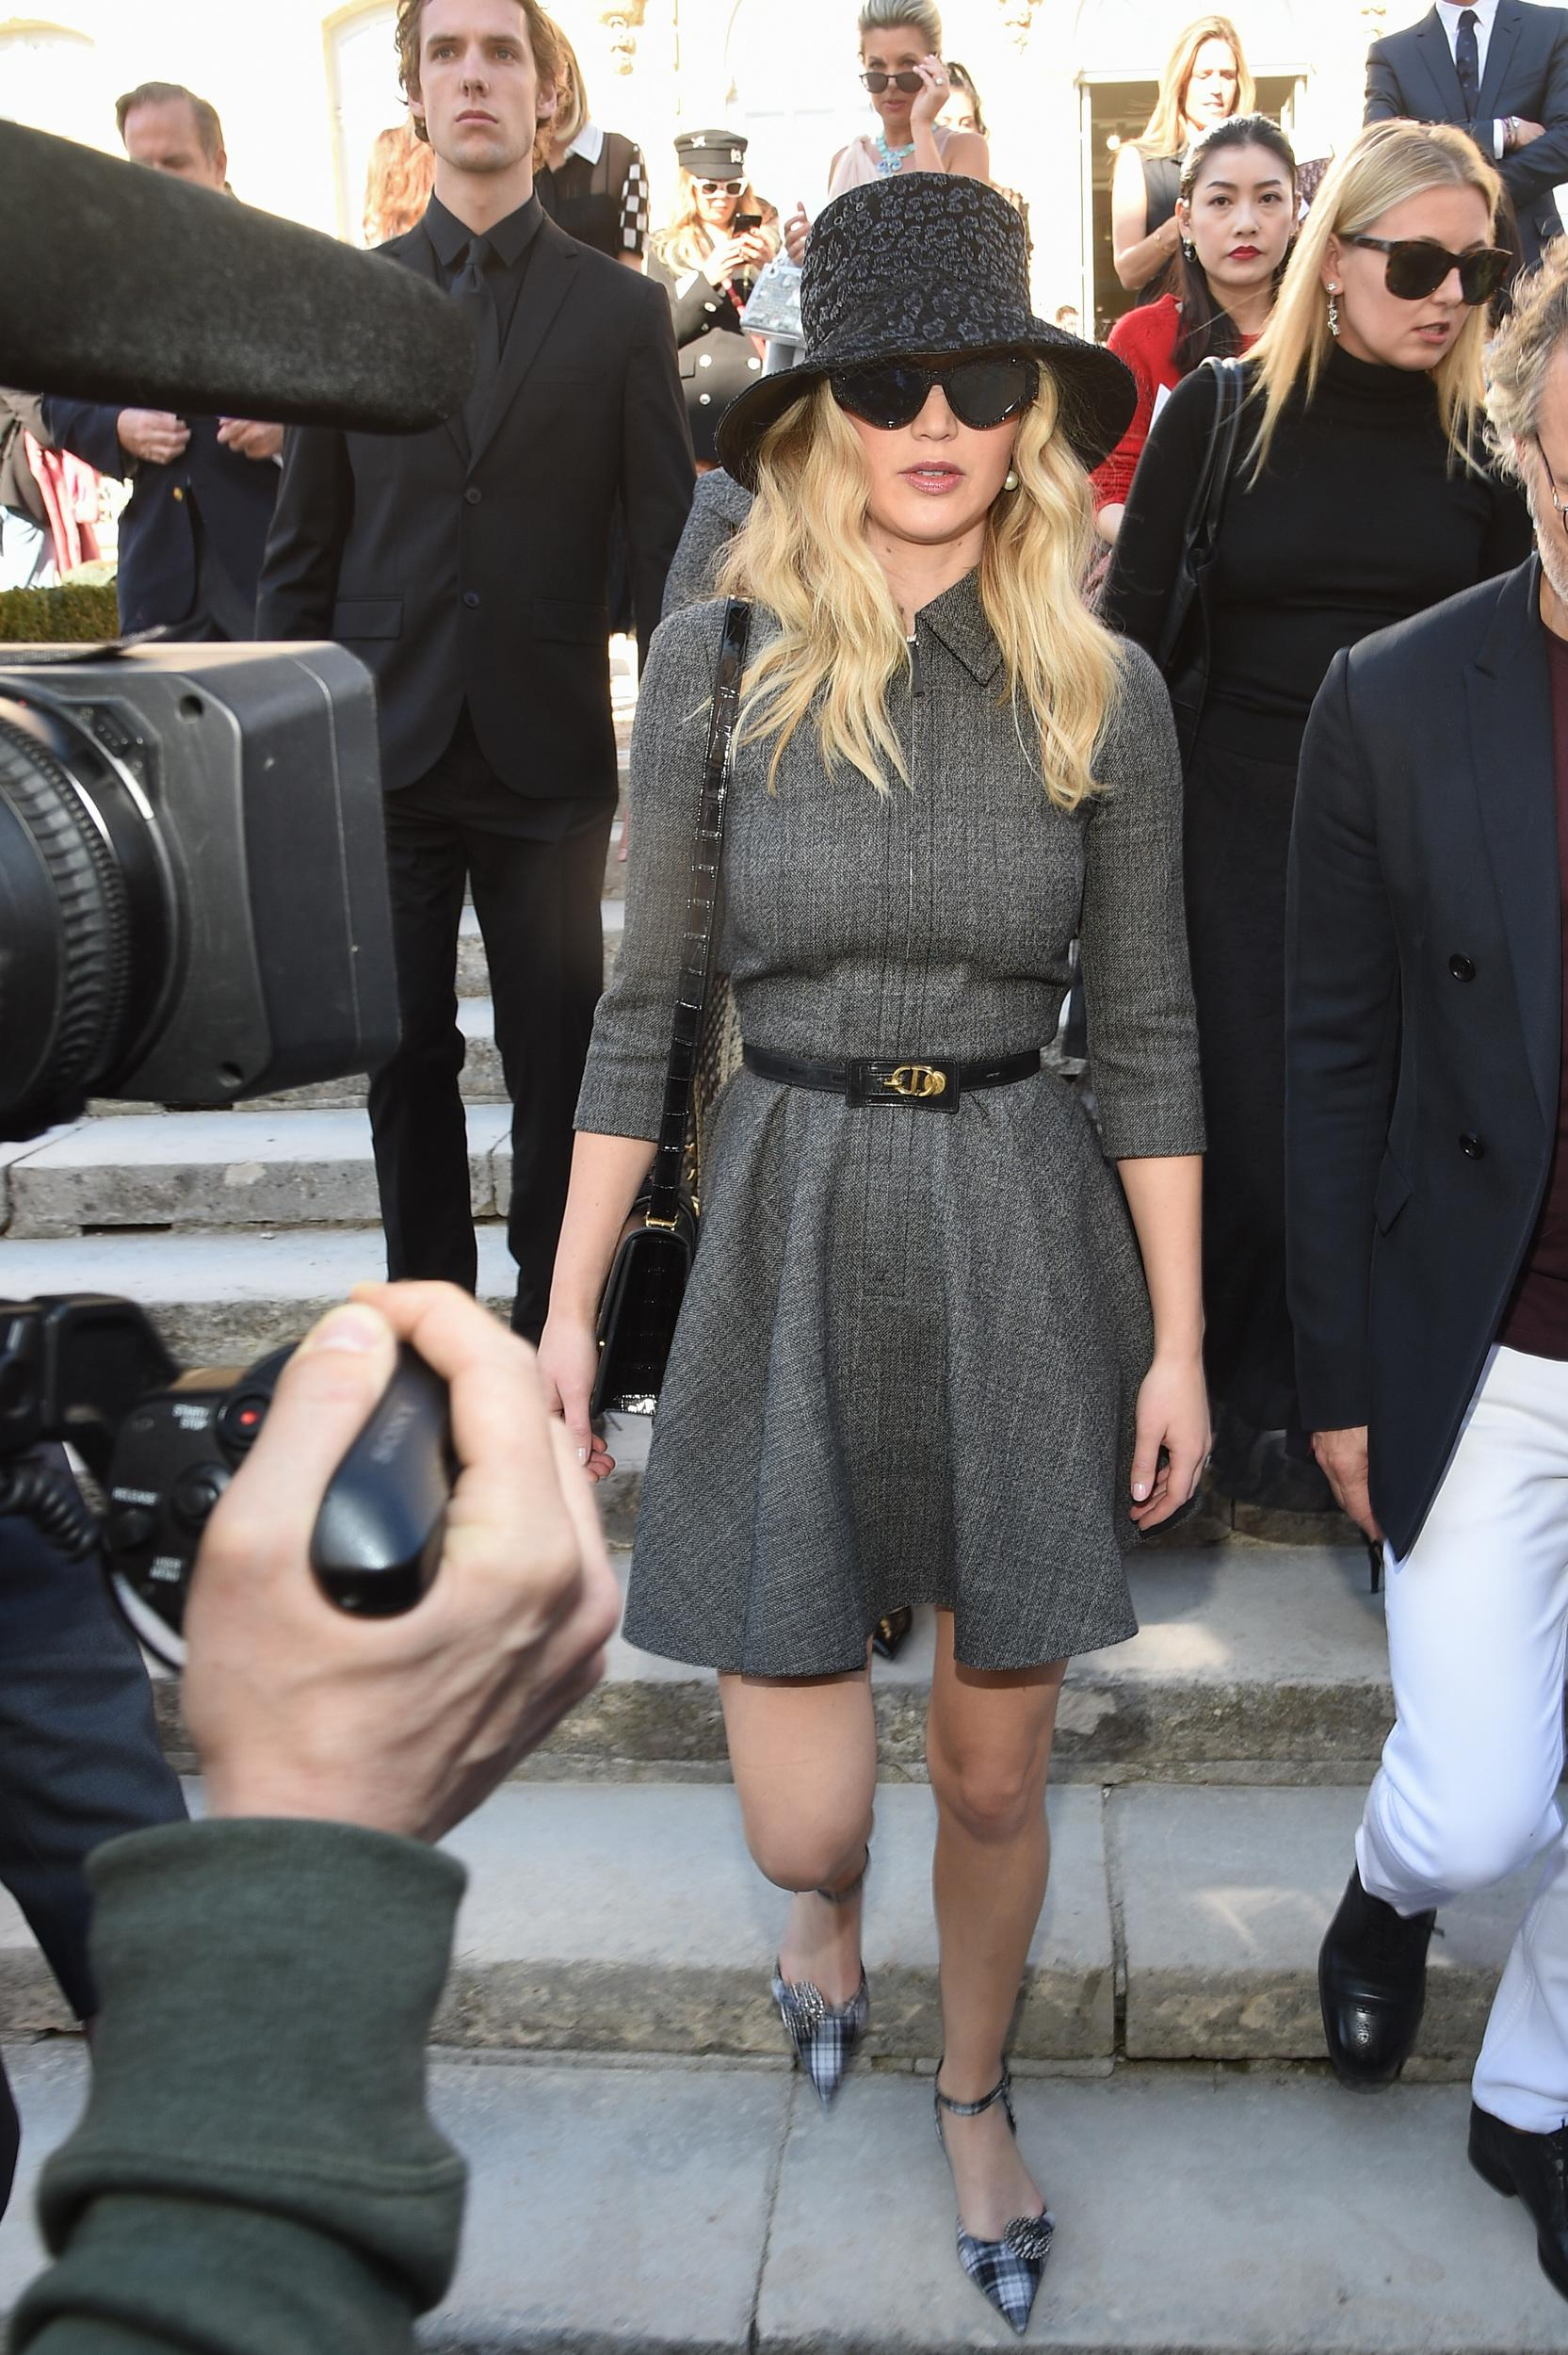 PARIS, FRANCE - FEBRUARY 26:Actress Jennifer Lawrence attends the Christian Dior show as part of the Paris Fashion Week Womenswear Fall/Winter 2019/2020 on February 26, 2019 in Paris, France. (Photo by Stephane Cardinale - Corbis/Corbis via Getty Images)